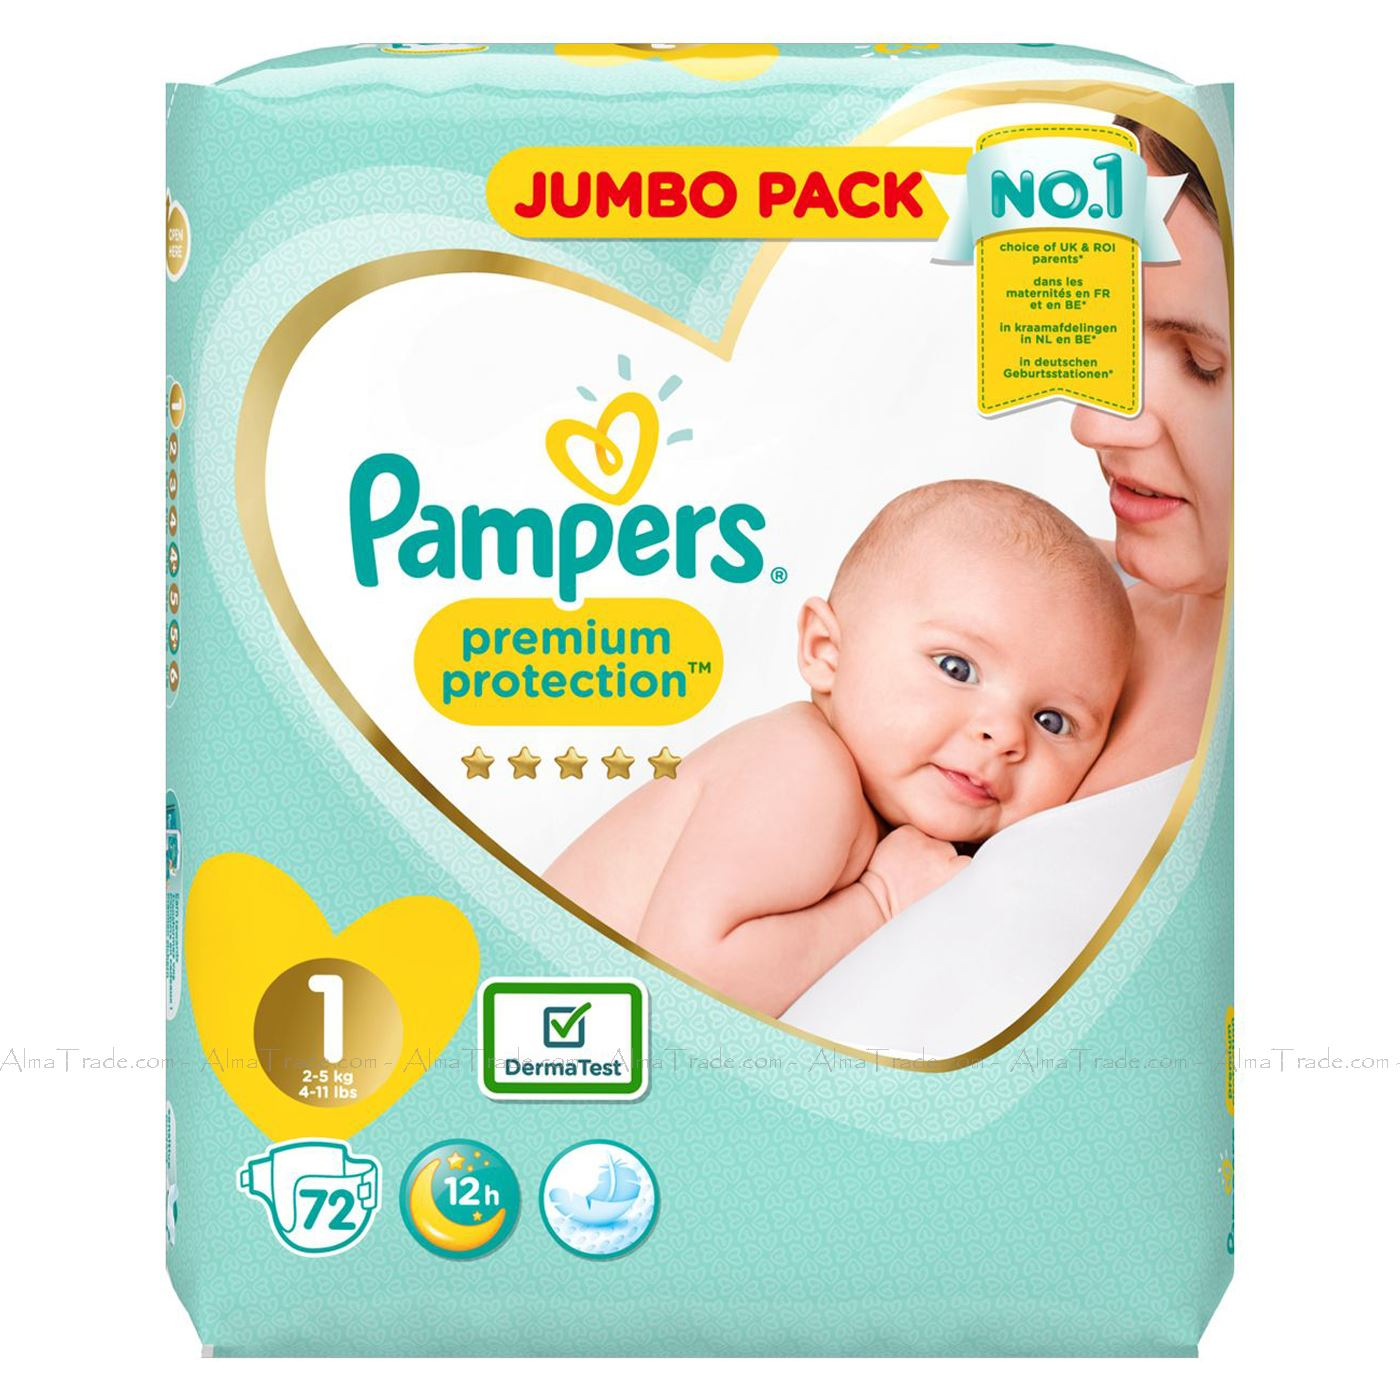 Pampers-Baby-Dry-Nappy-Air-Channels-Nappies-Size-1-2-3-4-5-6-7-Jumbo-Giga-Pack thumbnail 4